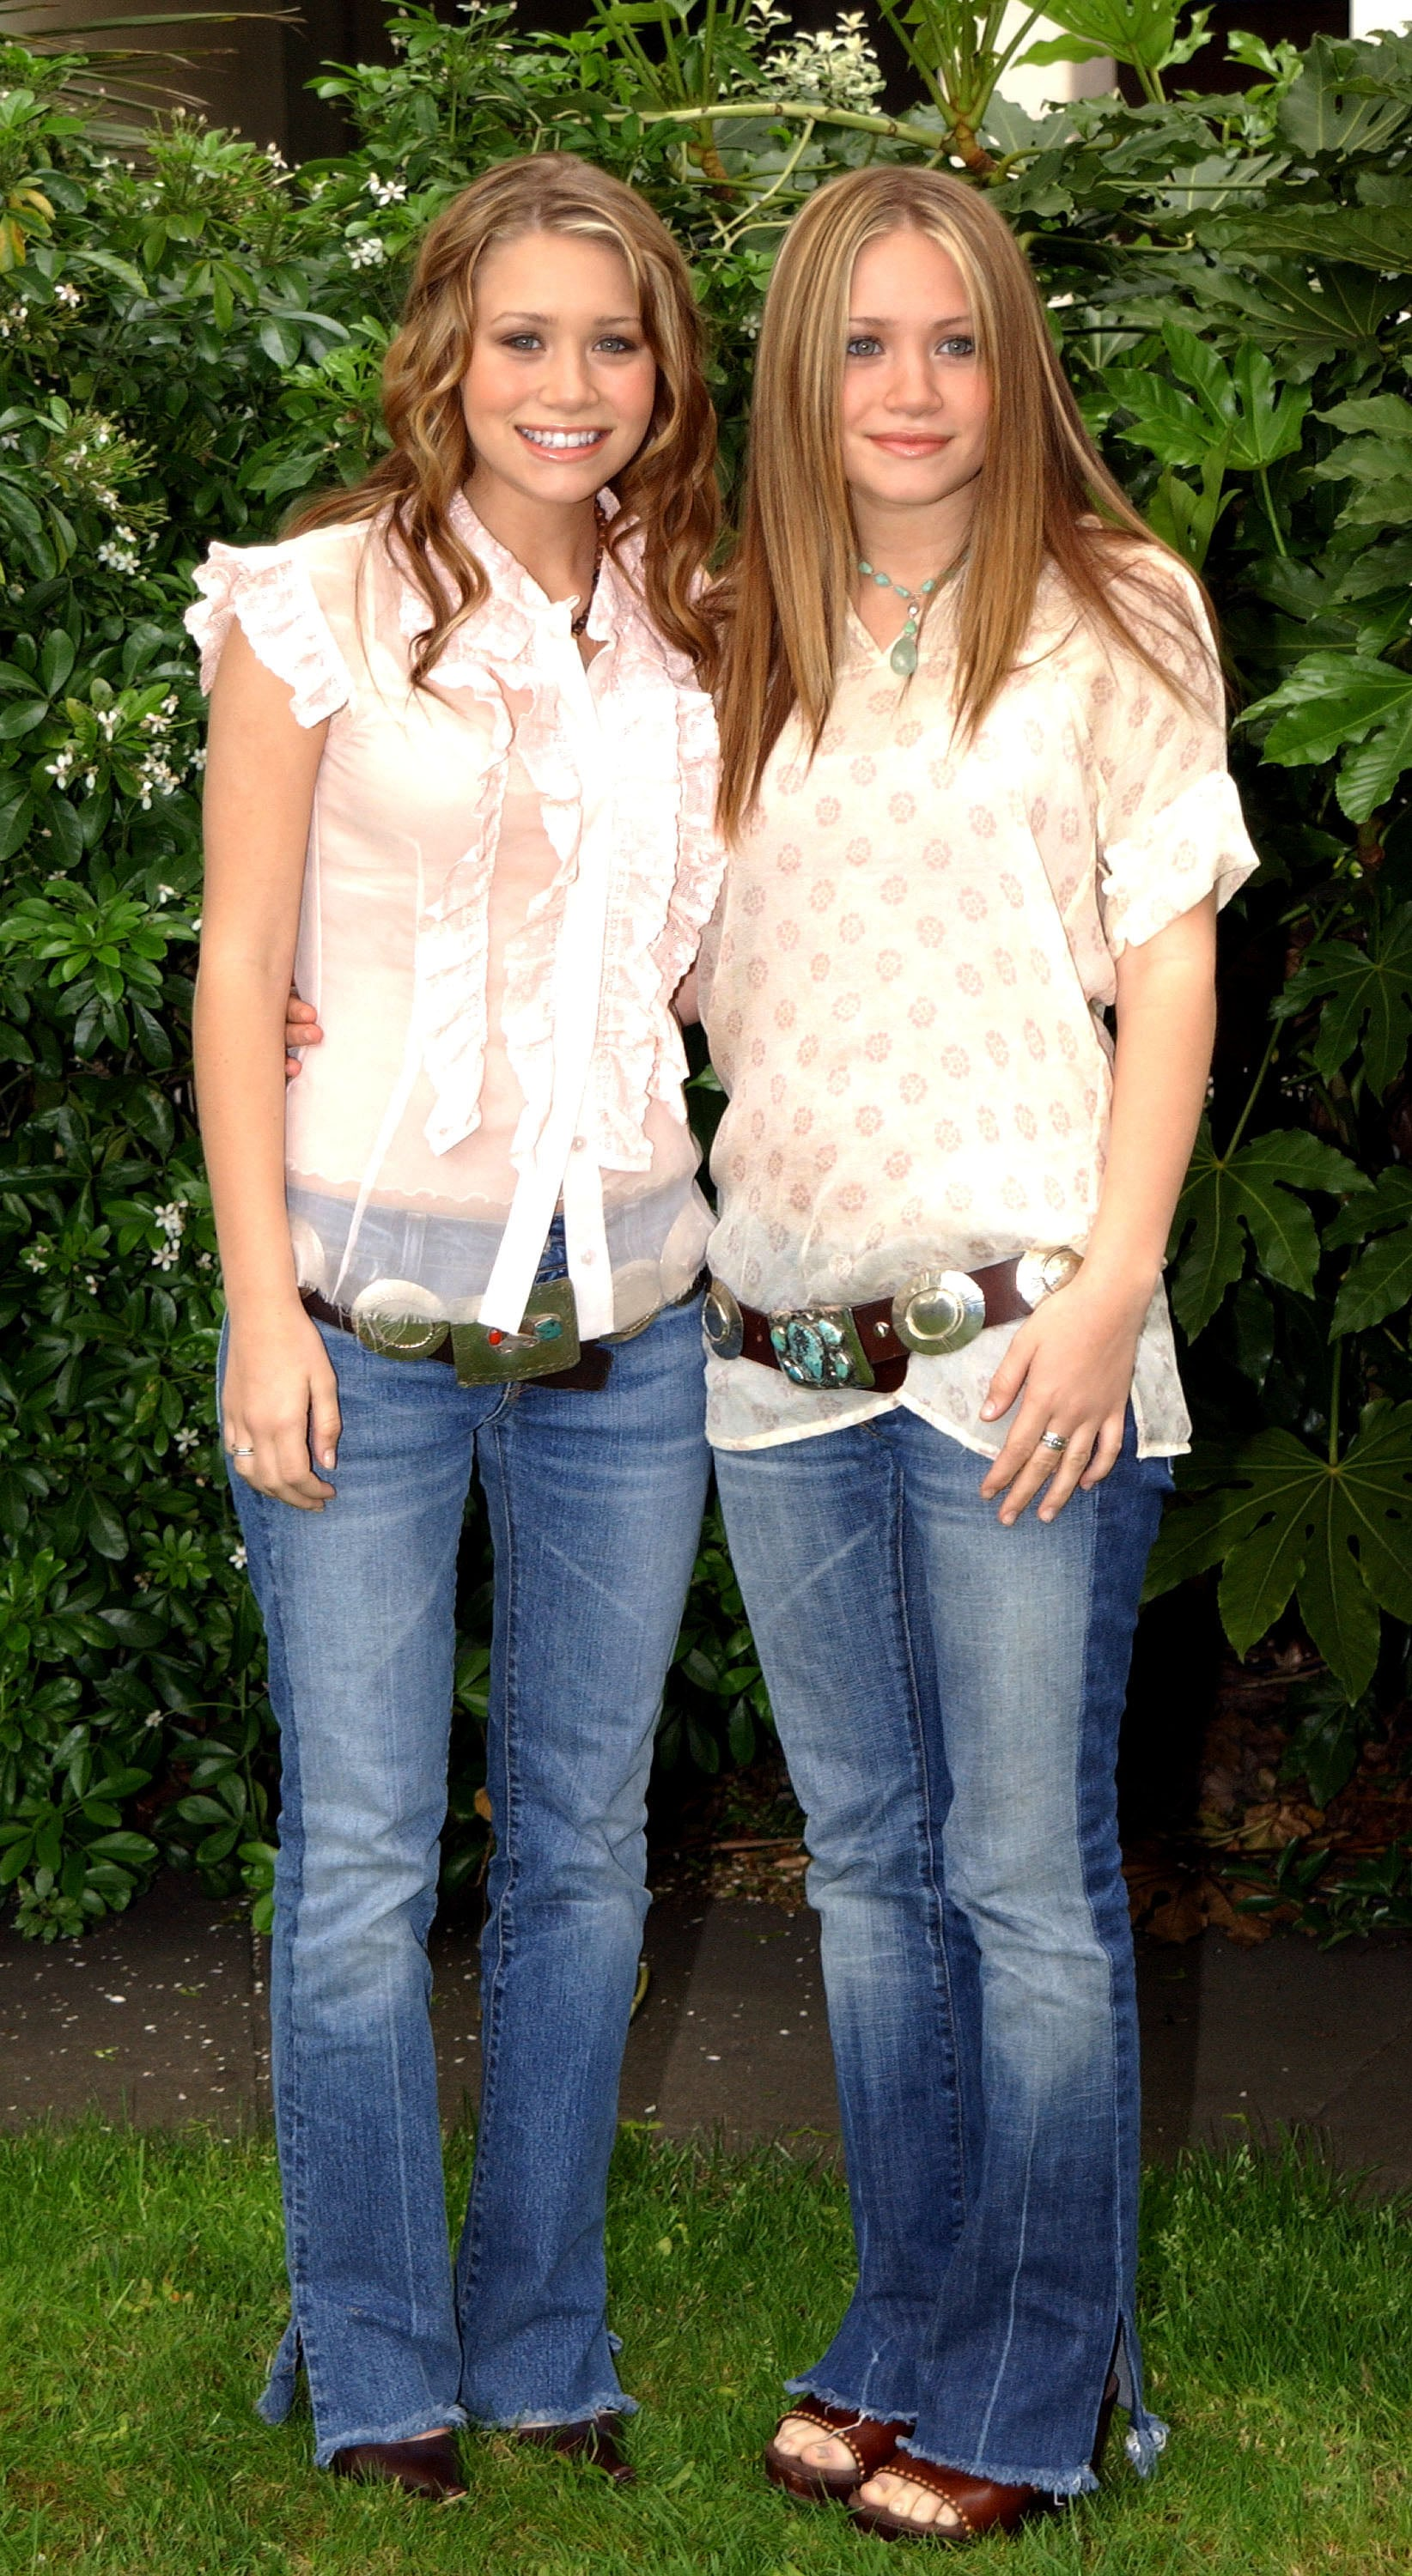 Twinning combo: Mary-Kate and Ashley styled washed denim with oversize cowboy belts and gauzy tops during a 2005 charity photocall in London.  Ashley chose a ruffle-detail blouse and pointed pumps. Mary-Kate went full-on boho-chic in a printed tunic and leather clogs.